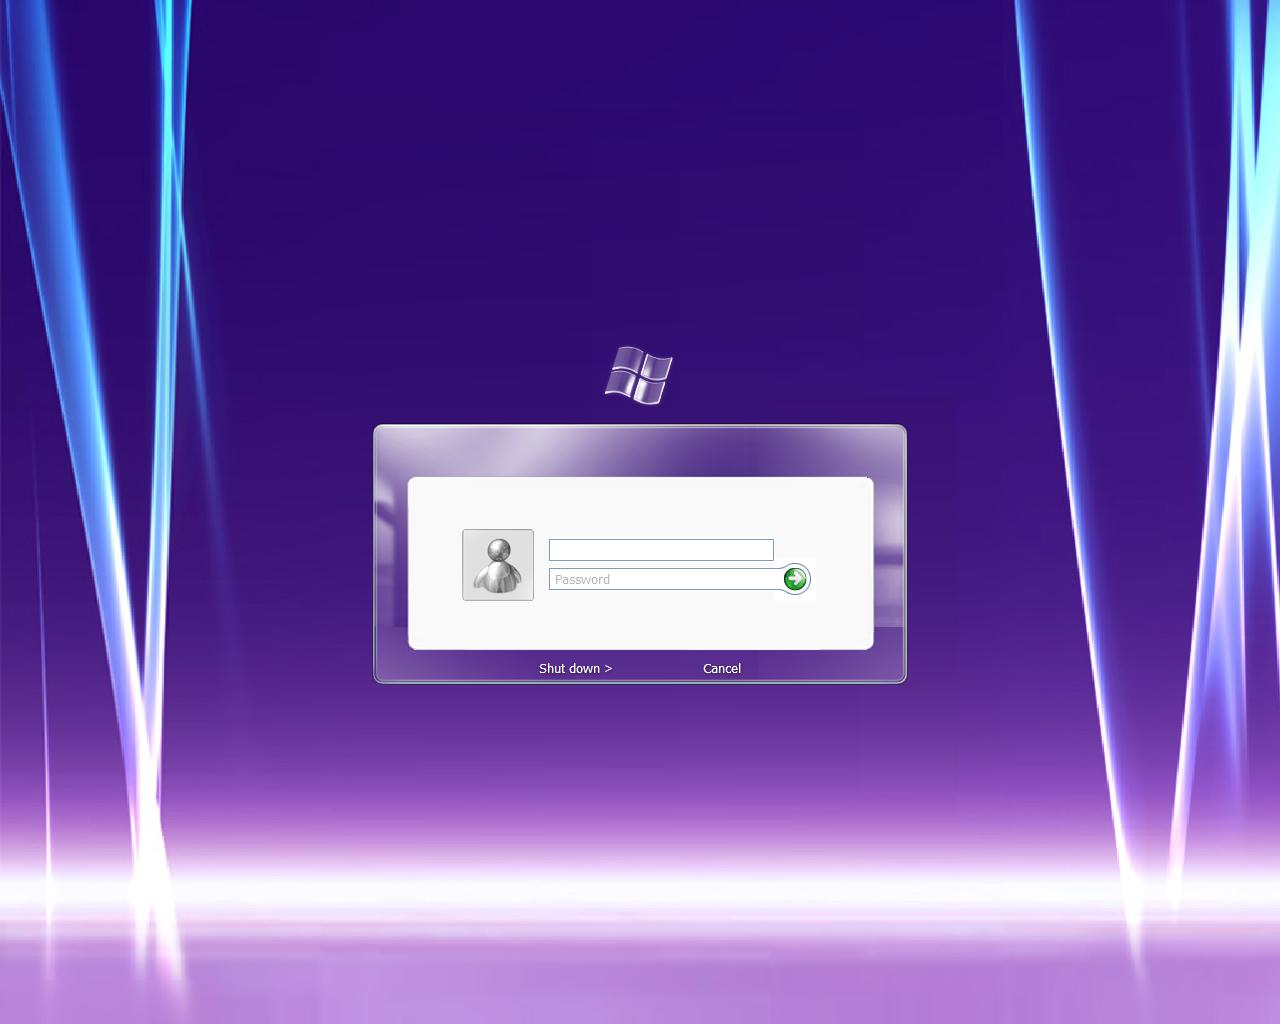 Windows server 2017 longhorn build 6001 csih33t korgebenchmes's blog.